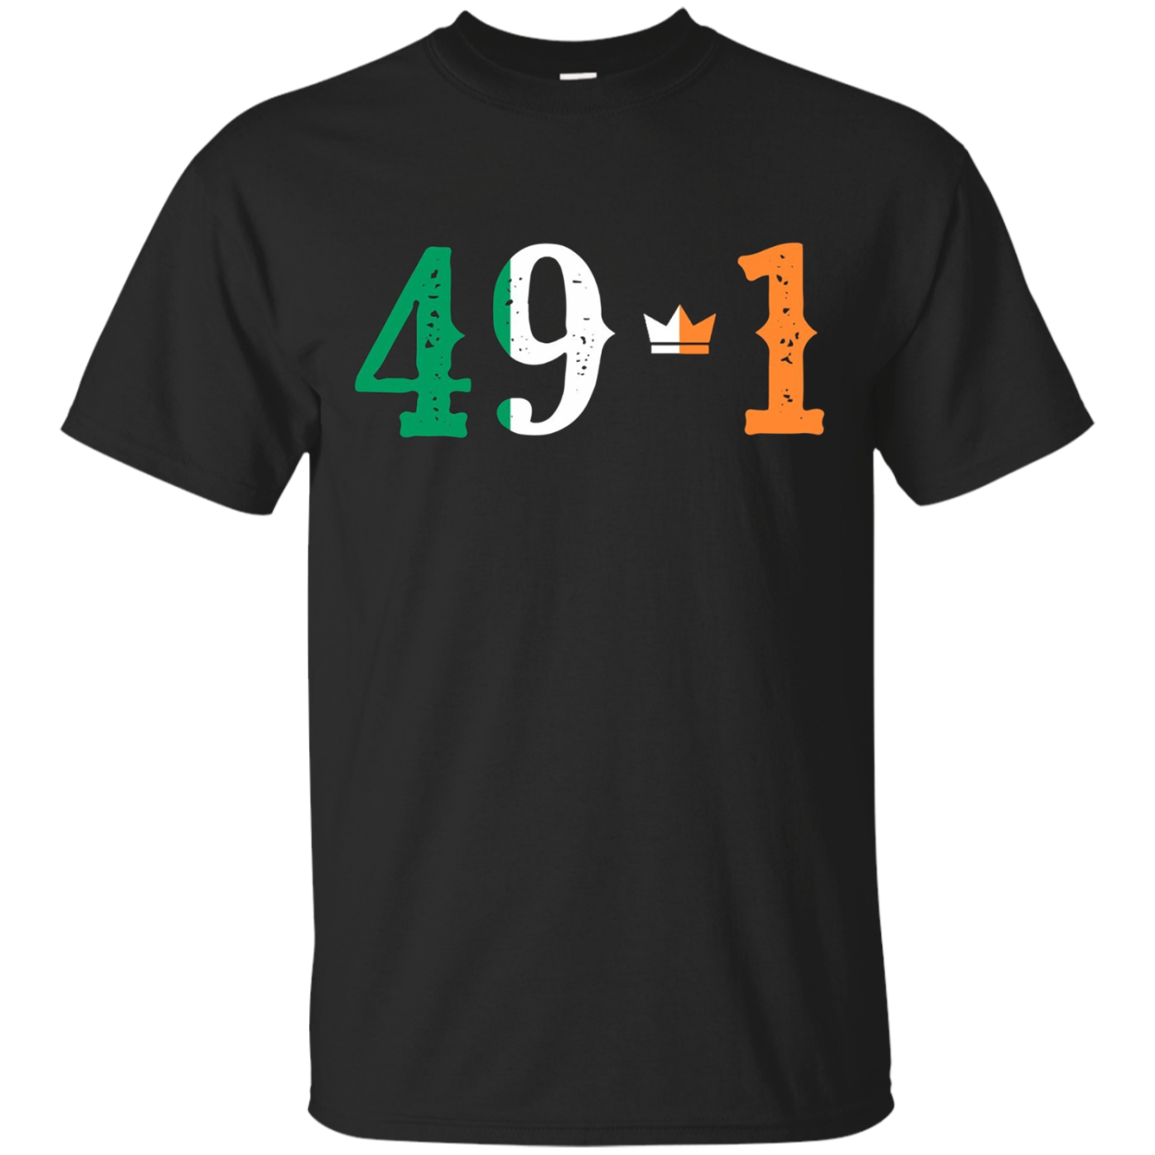 49-1 Ireland Crown | MMA Boxing | 49 and 1 T-Shirt